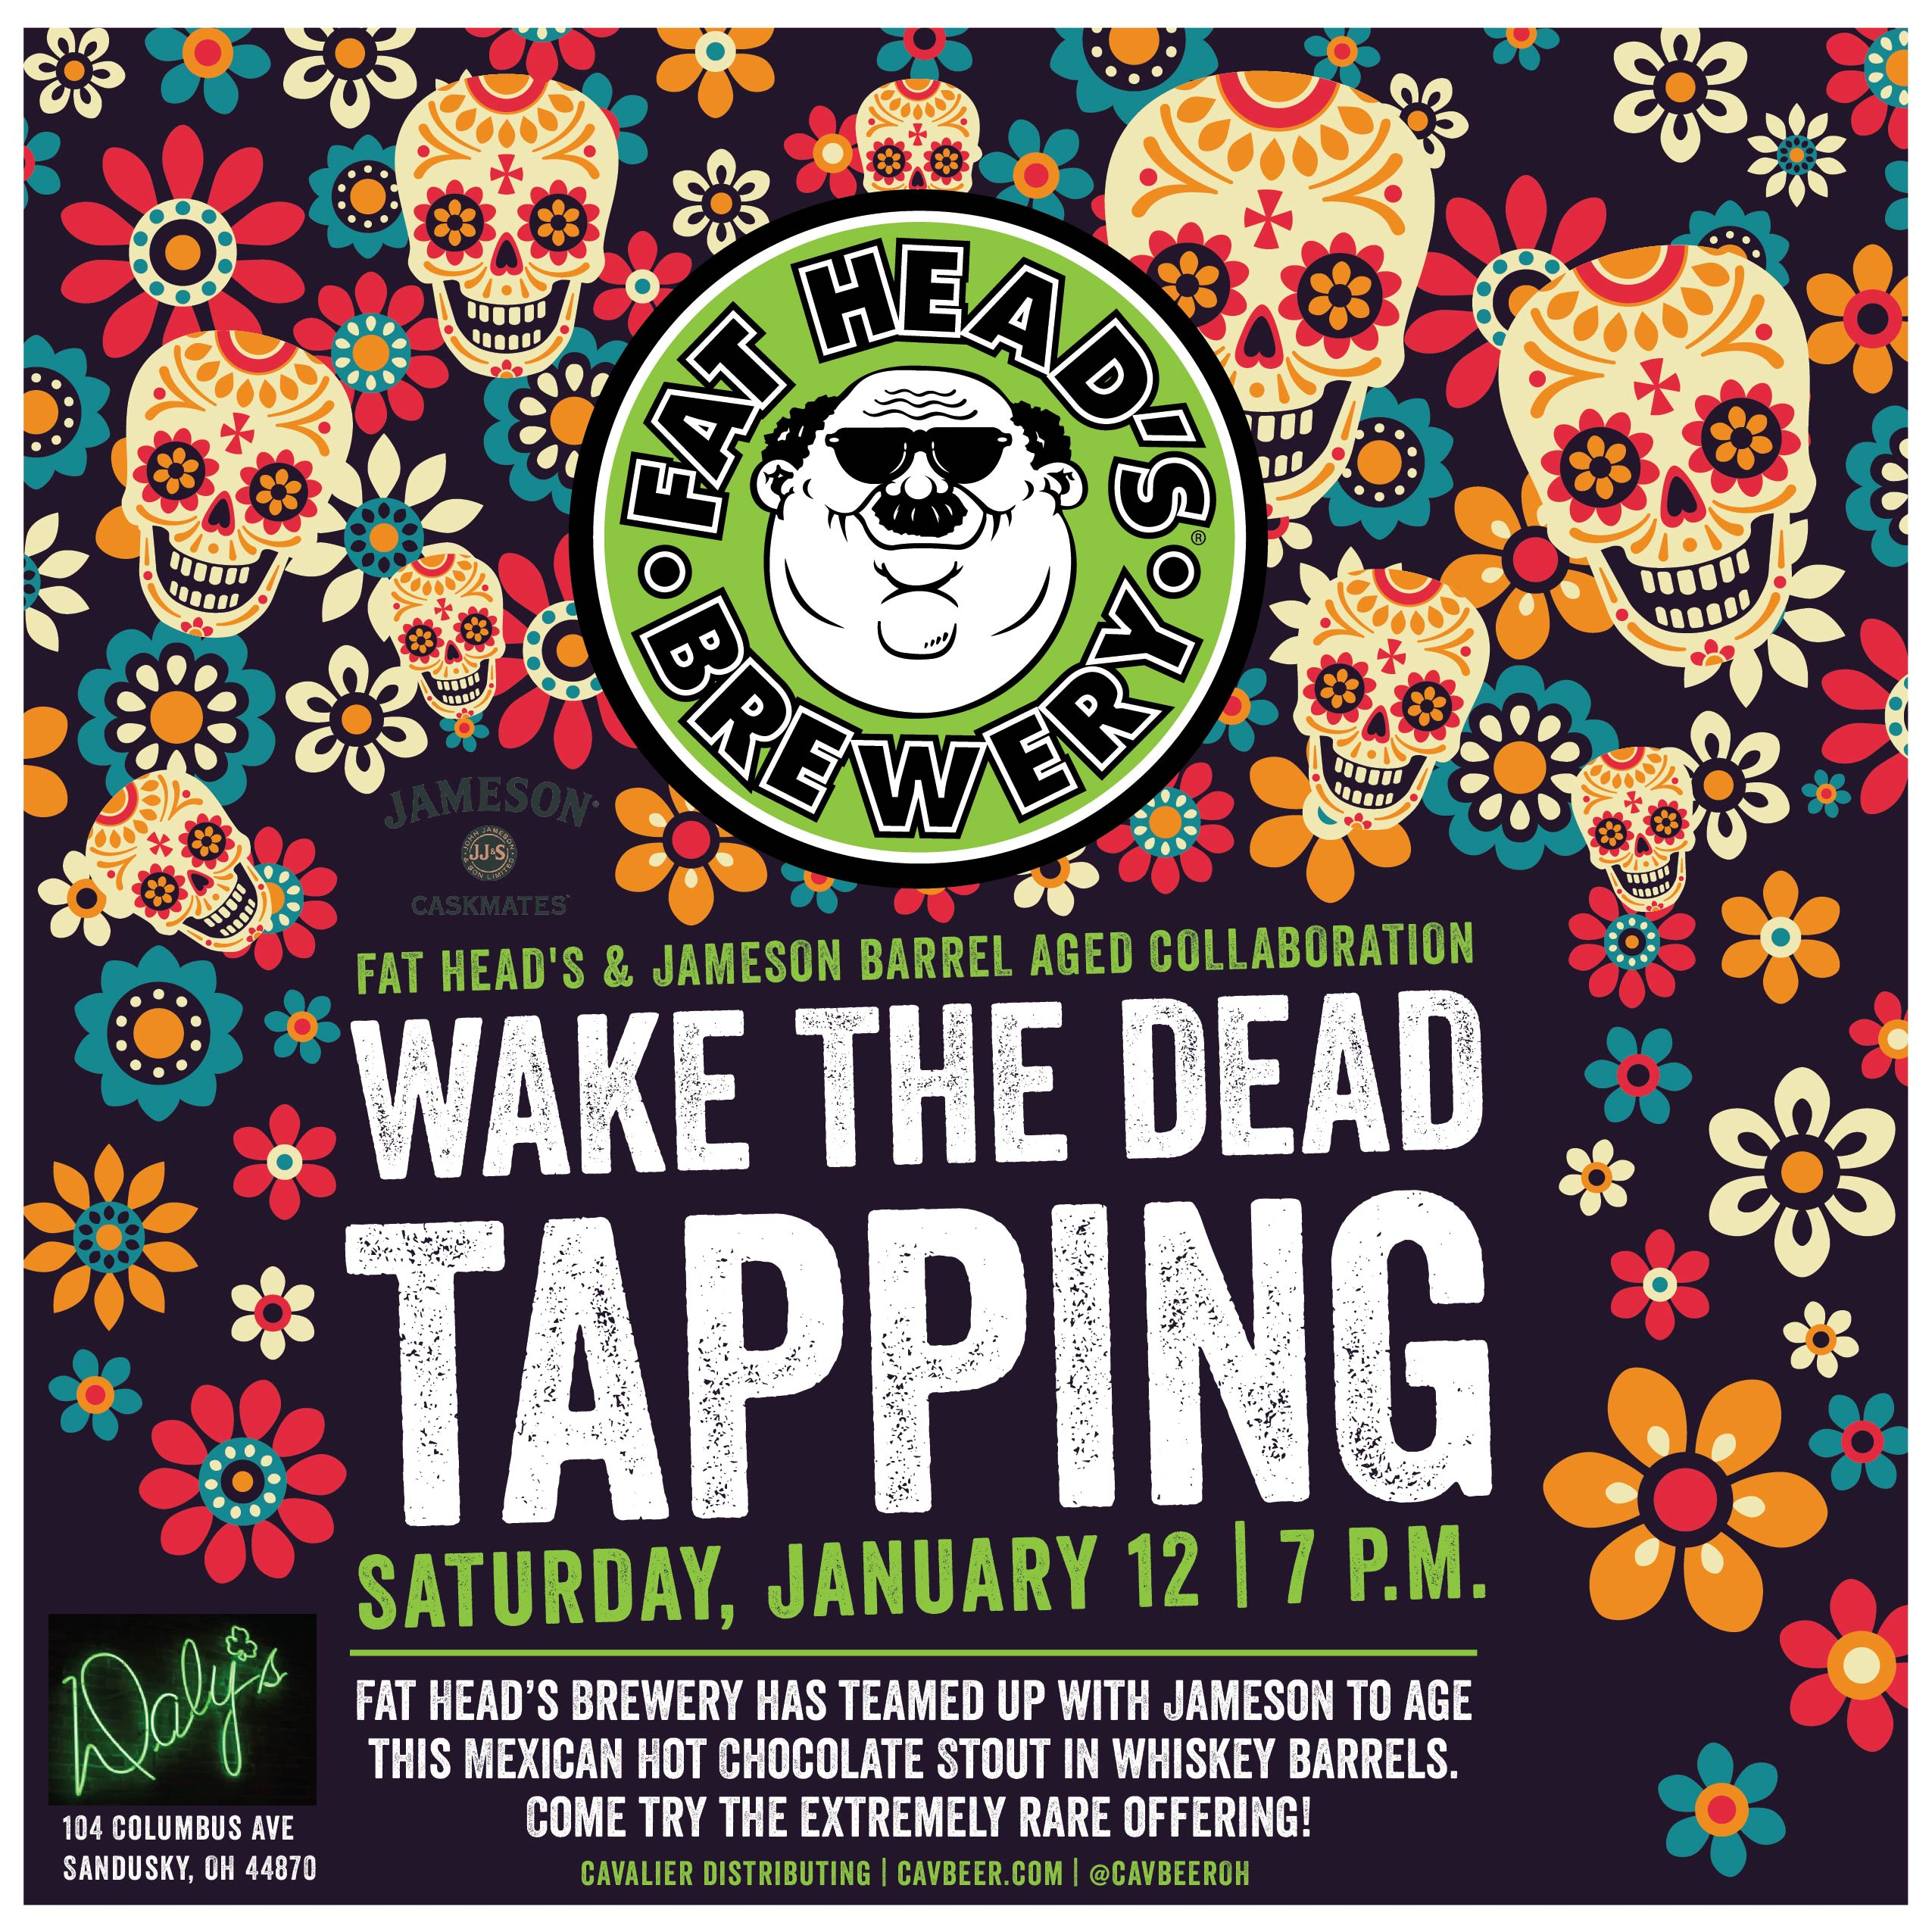 Wake the Dead Tapping @ Daly's